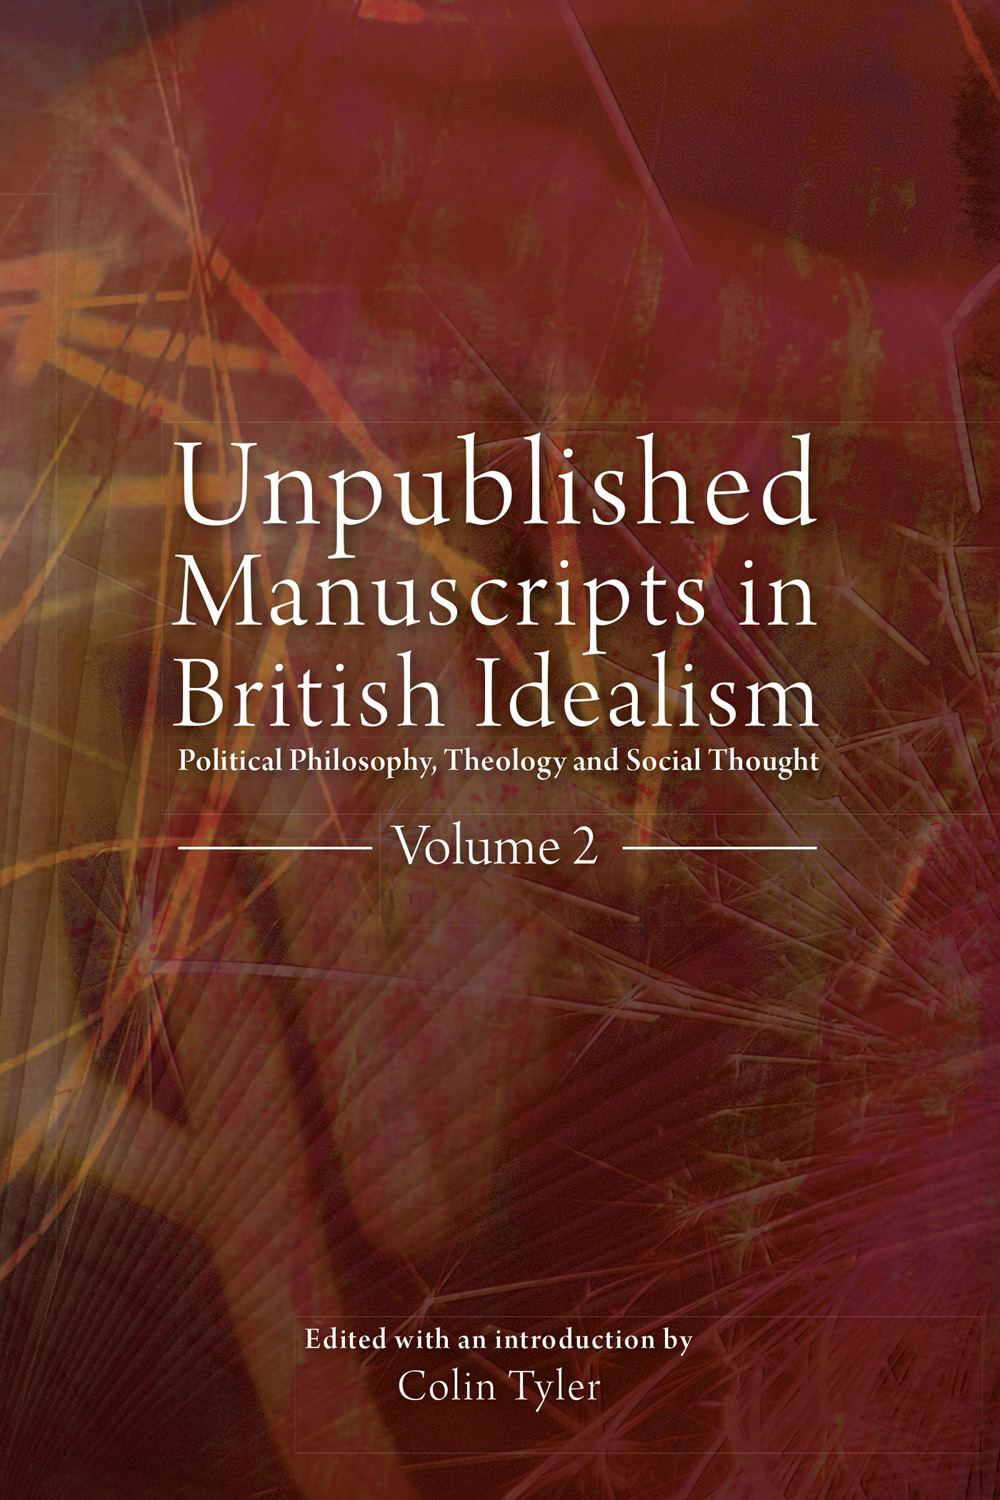 Tyler, Colin - Unpublished Manuscripts in British Idealism - Volume 2, ebook